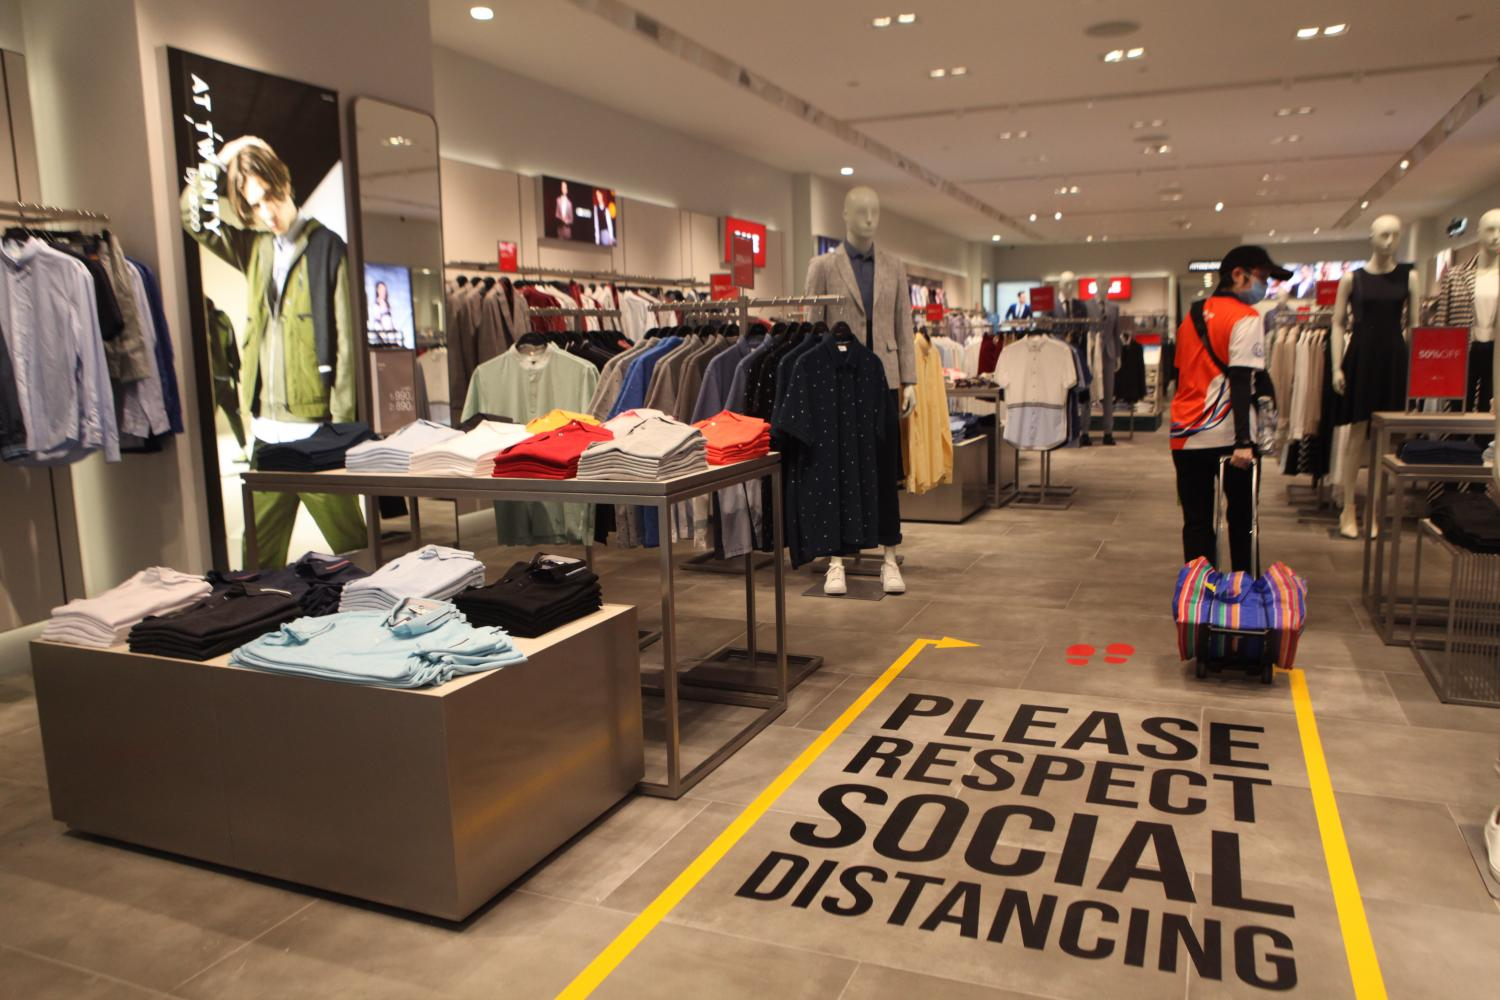 Social distancing leaves retailers less space to market their goods.